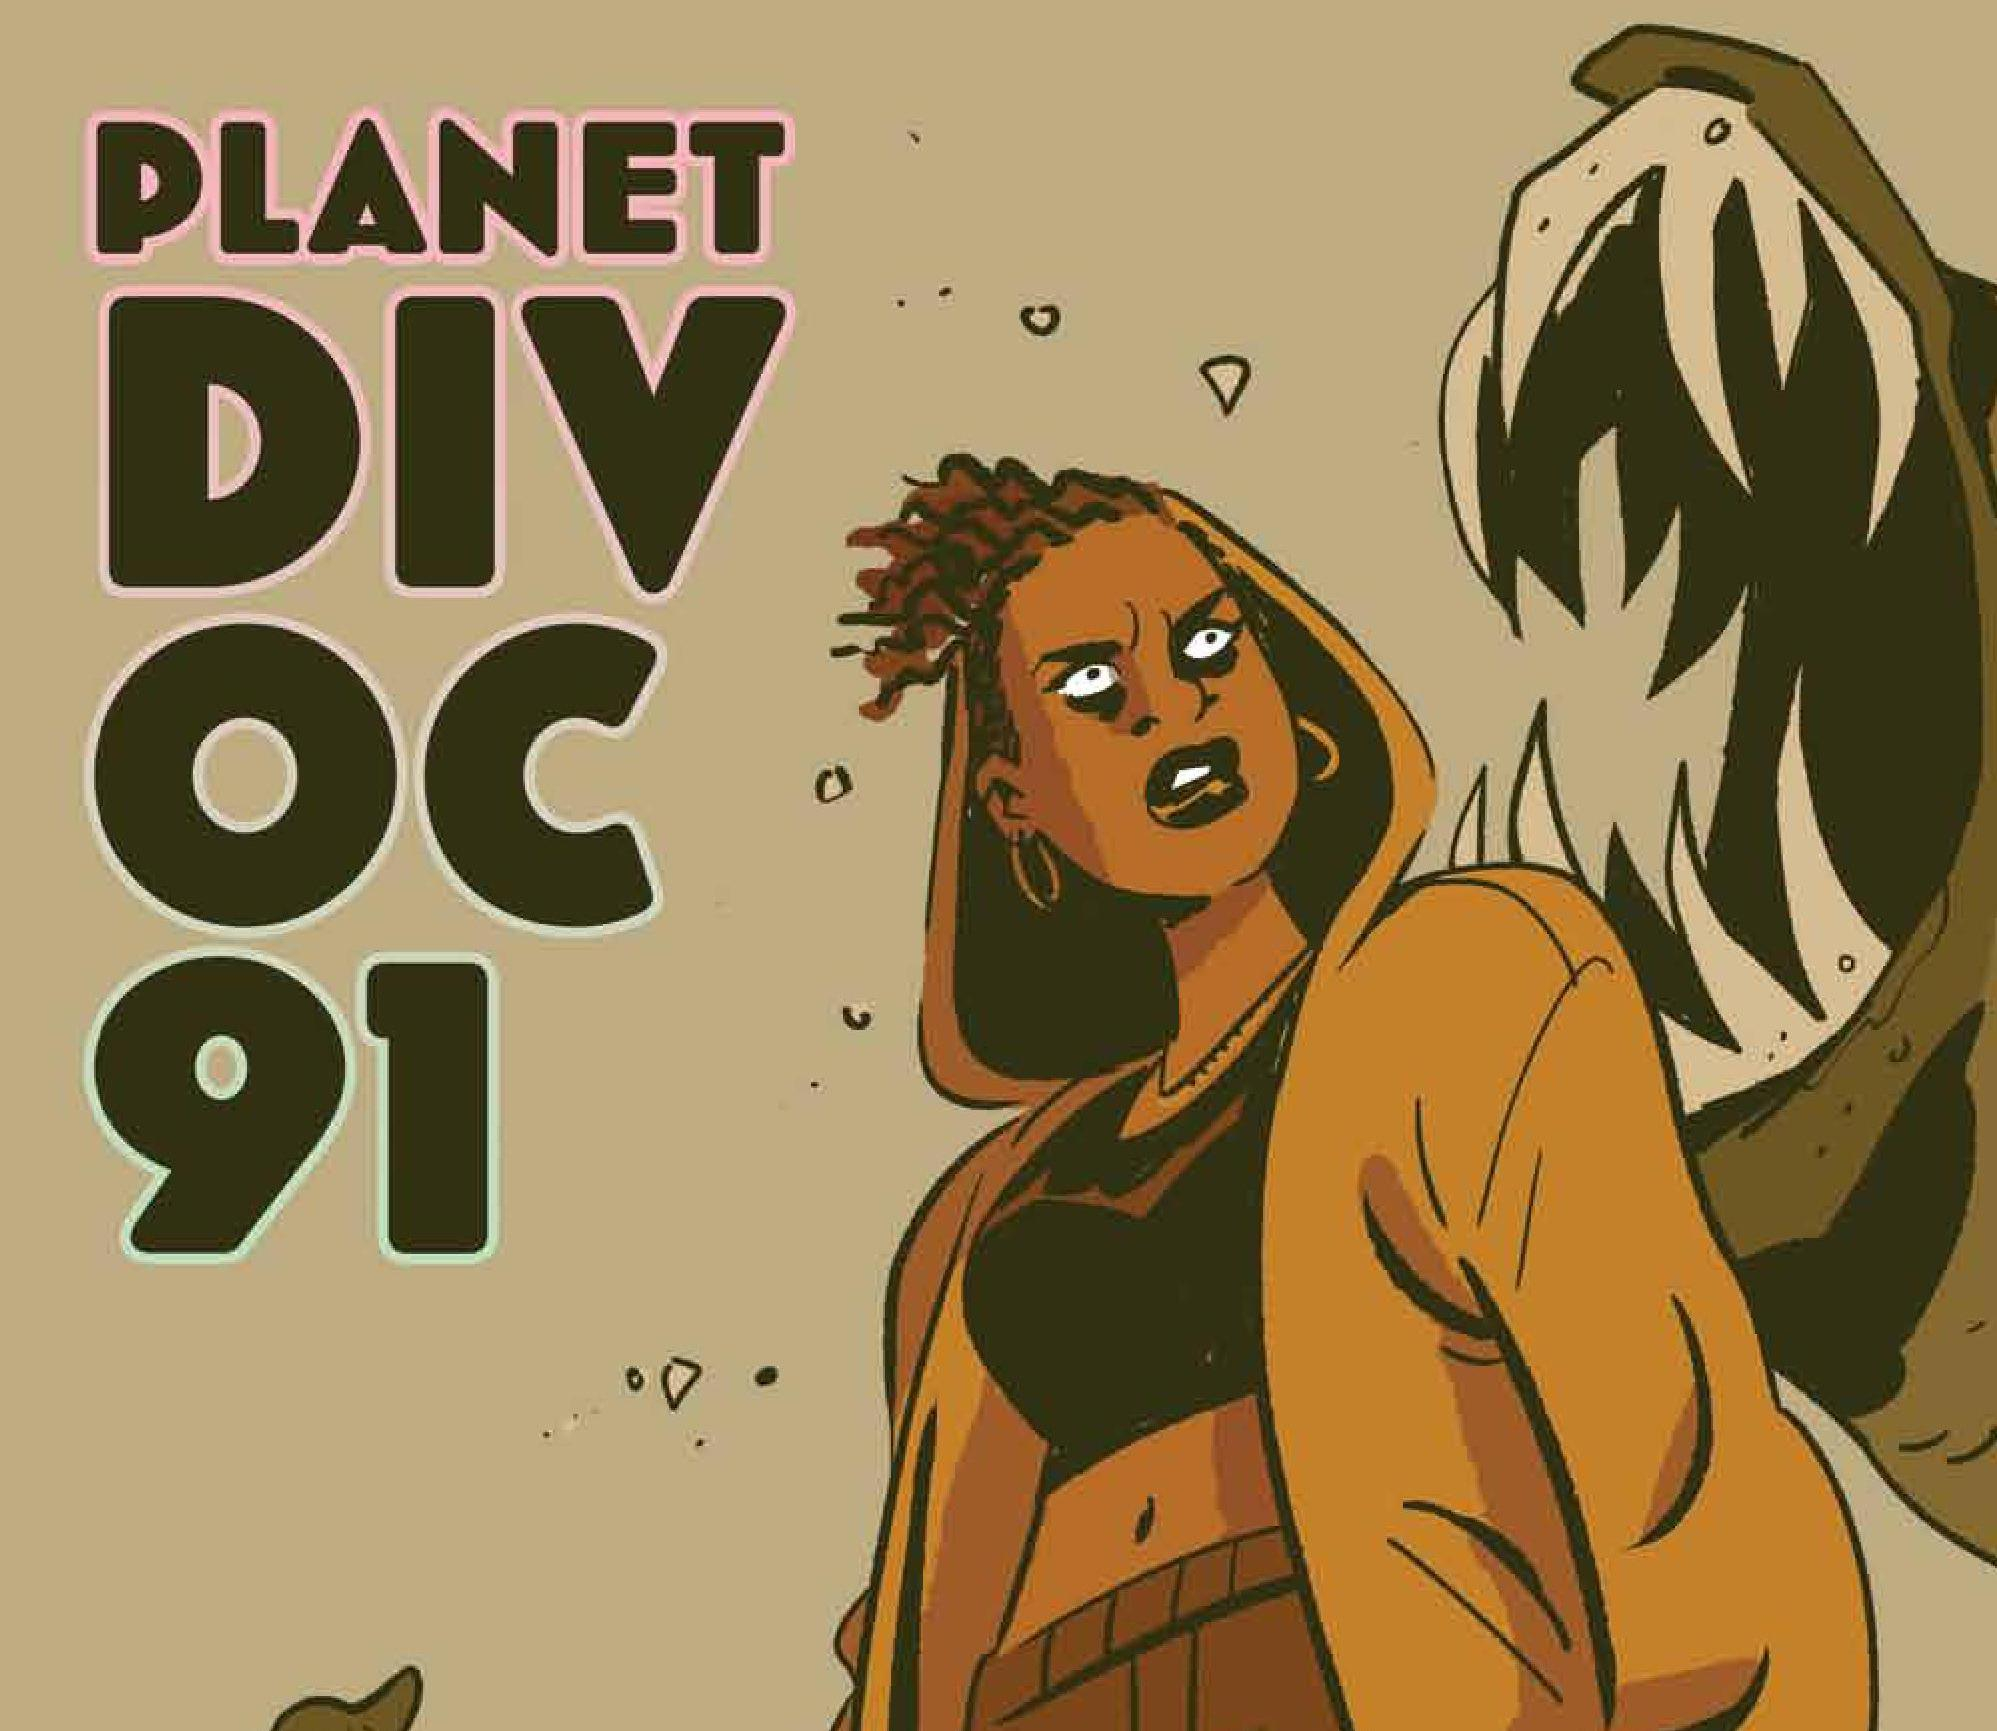 'PLANET DIVOC-91' -- Empowering young adults in the age of COVID-19, with Sara Kenney and Dr. Bella Starling